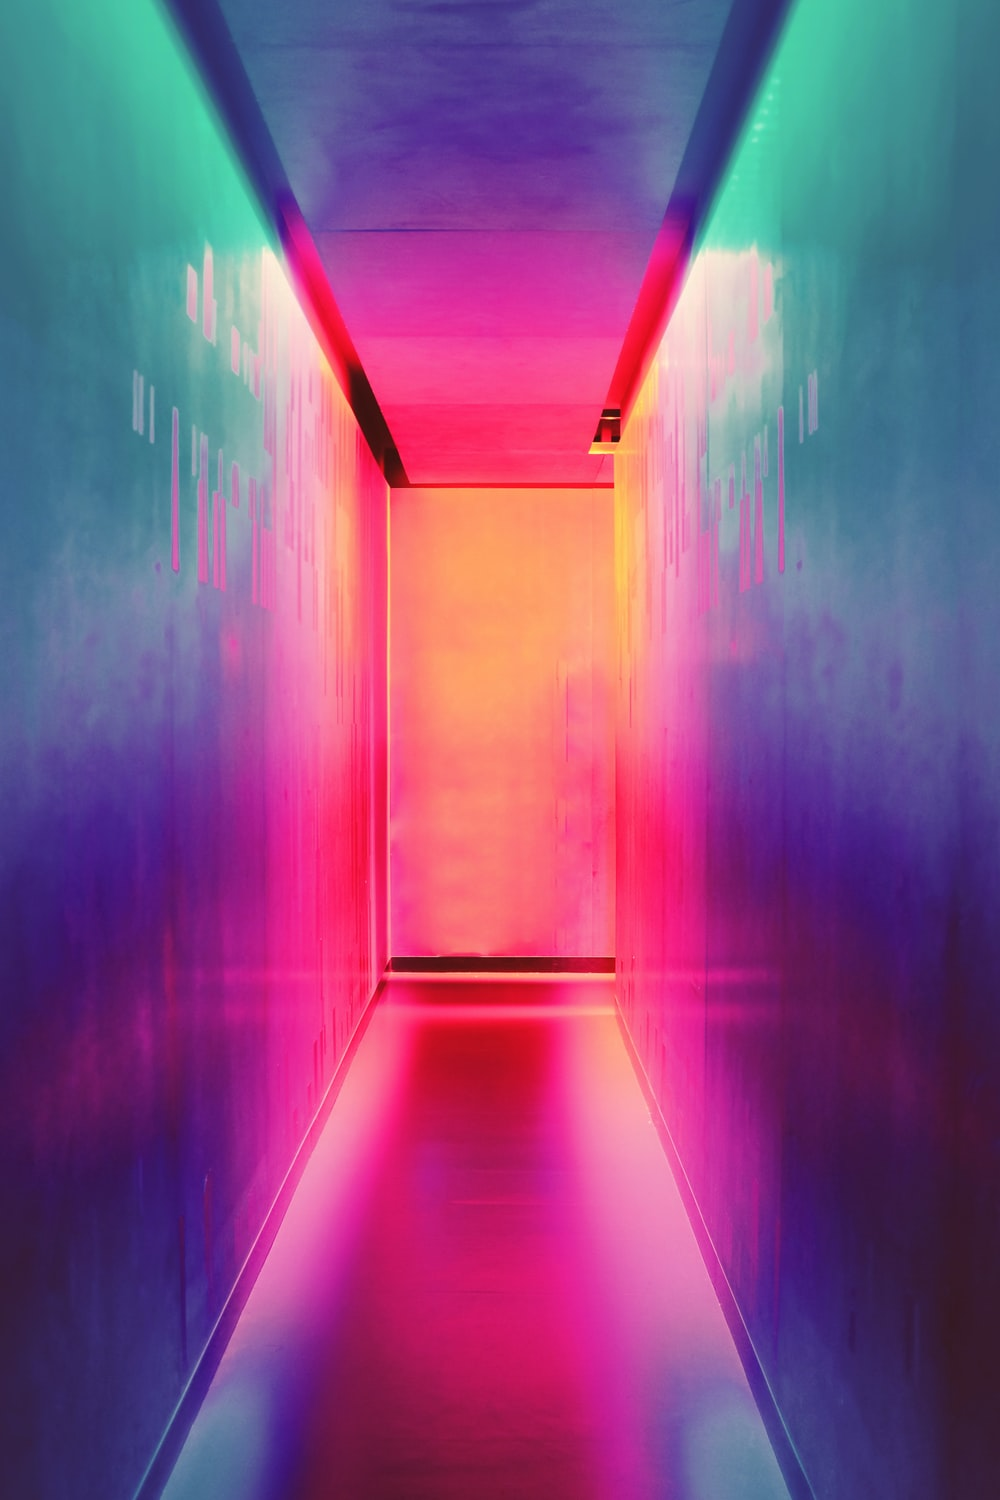 multicolored hallway